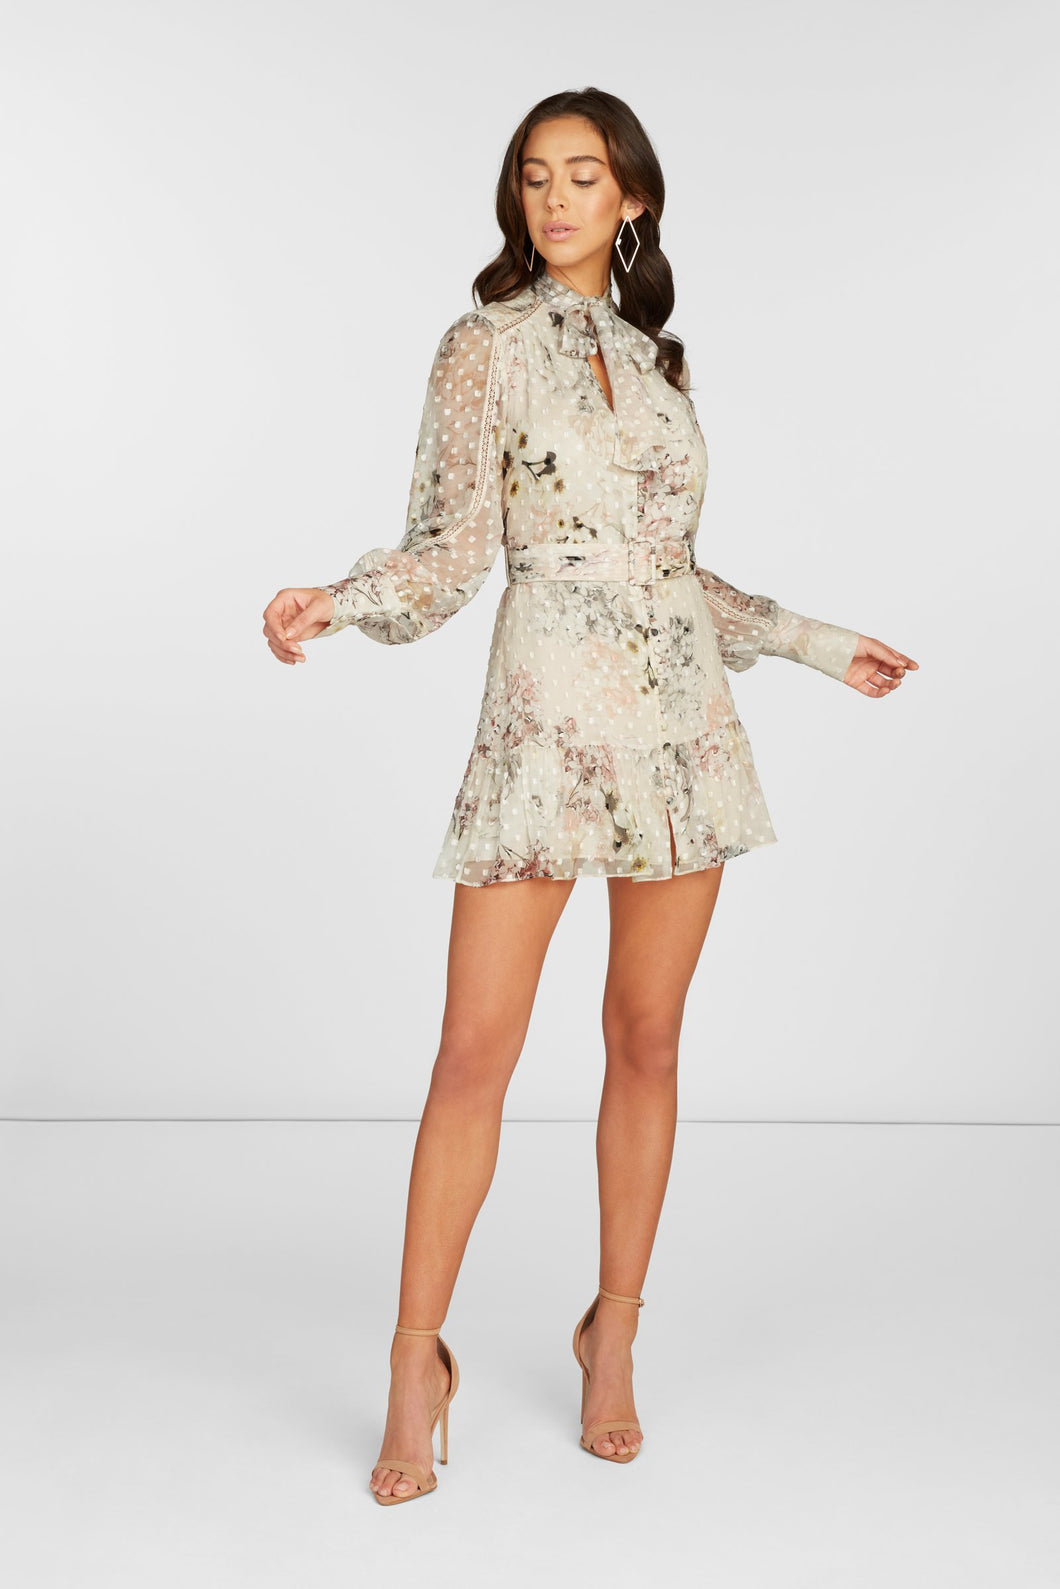 Madison Long Sleeve Mini Dress in Off White Floral Printed Clip Dot with Lace Detail